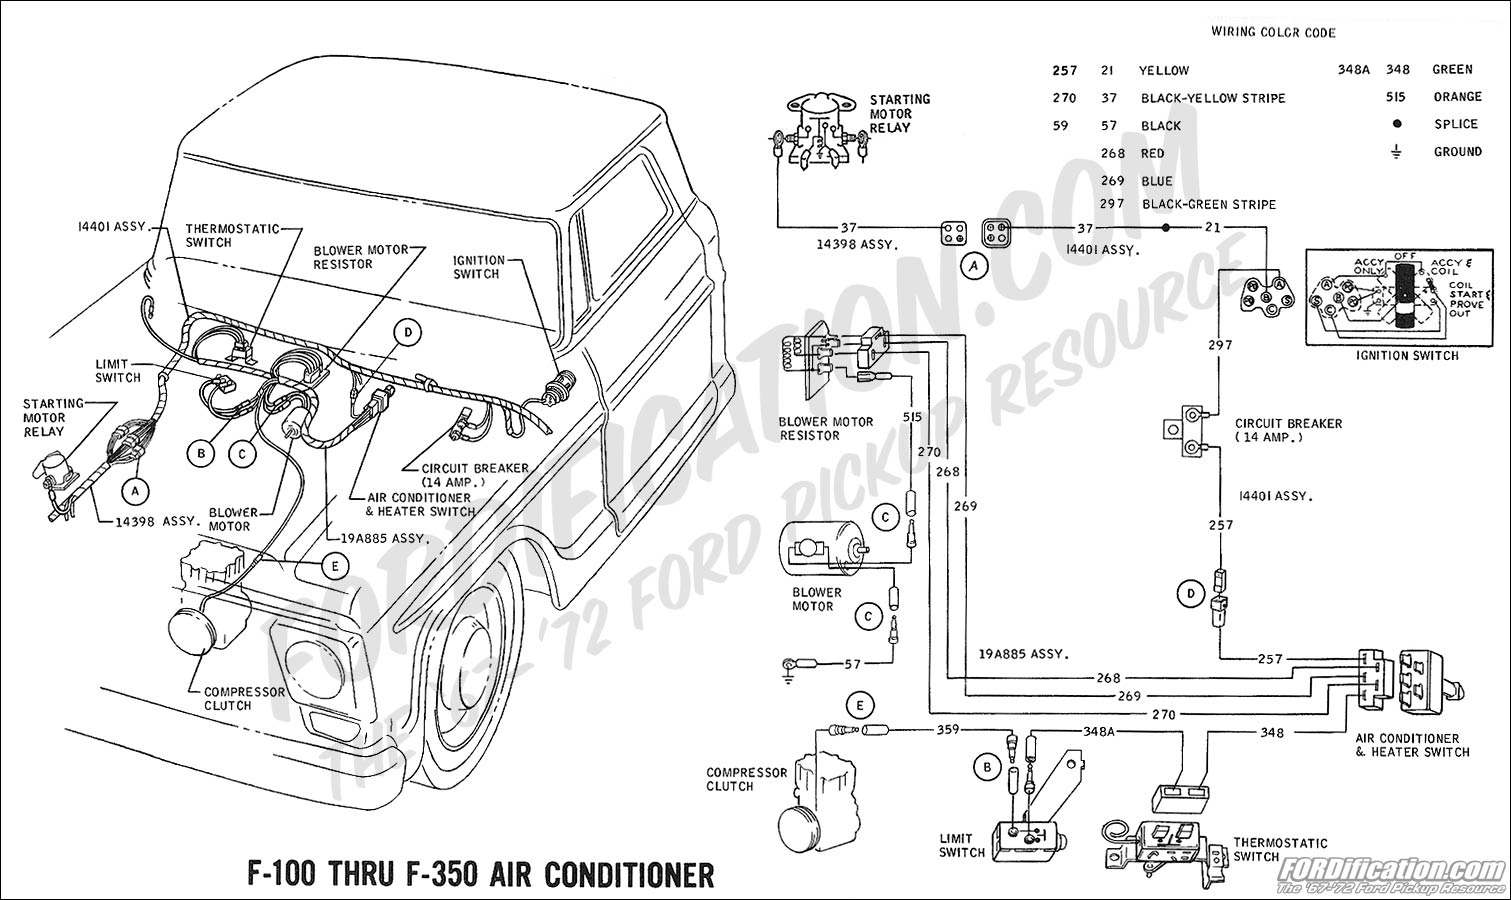 Brilliant 78 Ford F 250 Steering Column Wiring Diagram Wiring Library Wiring Cloud Onicaxeromohammedshrineorg